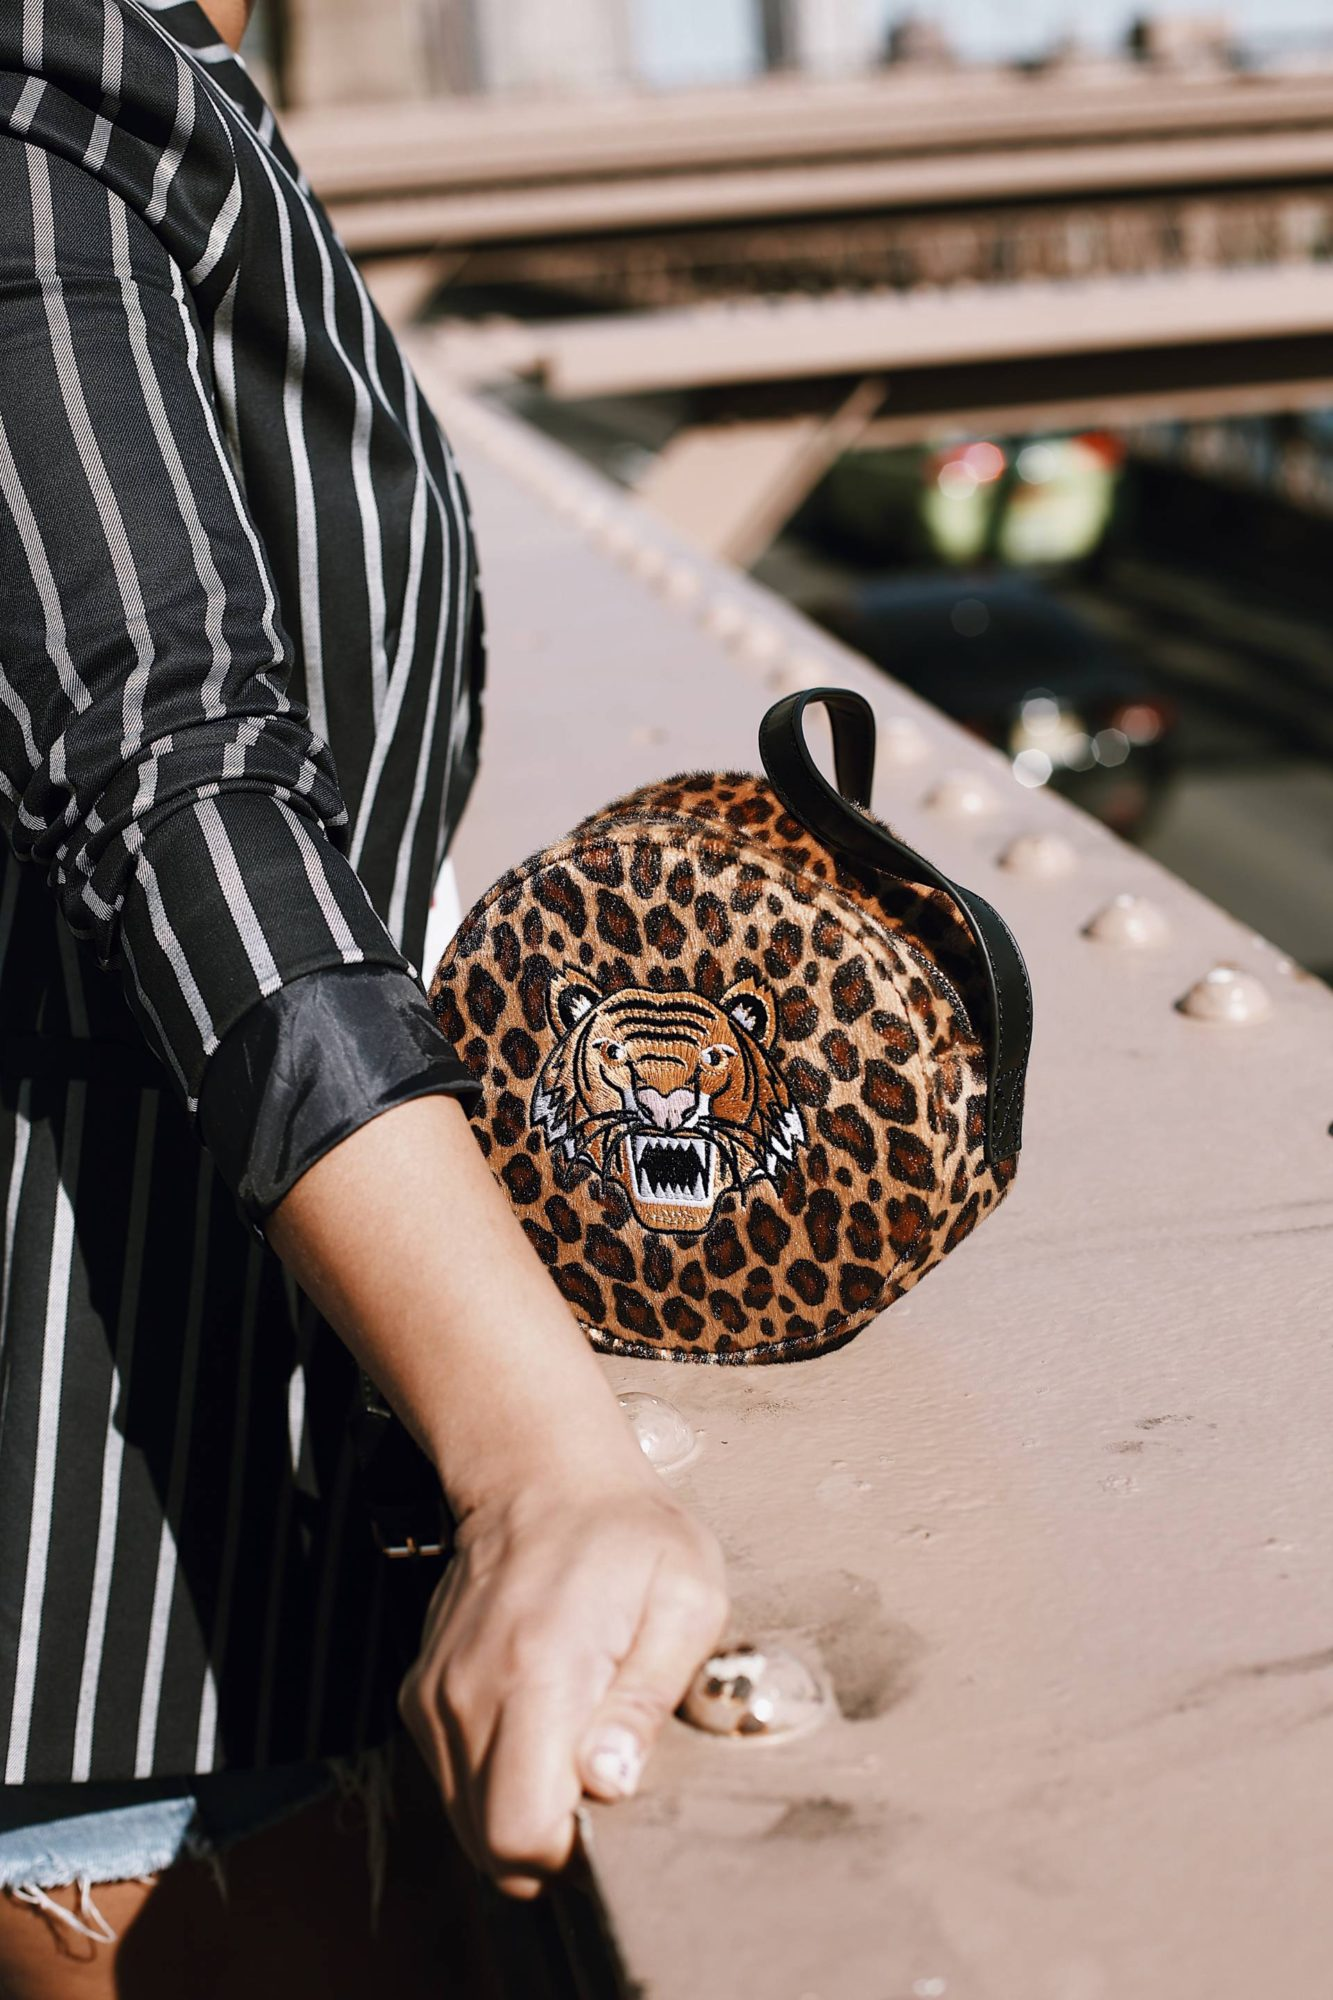 The Edit: Leopard Accessories